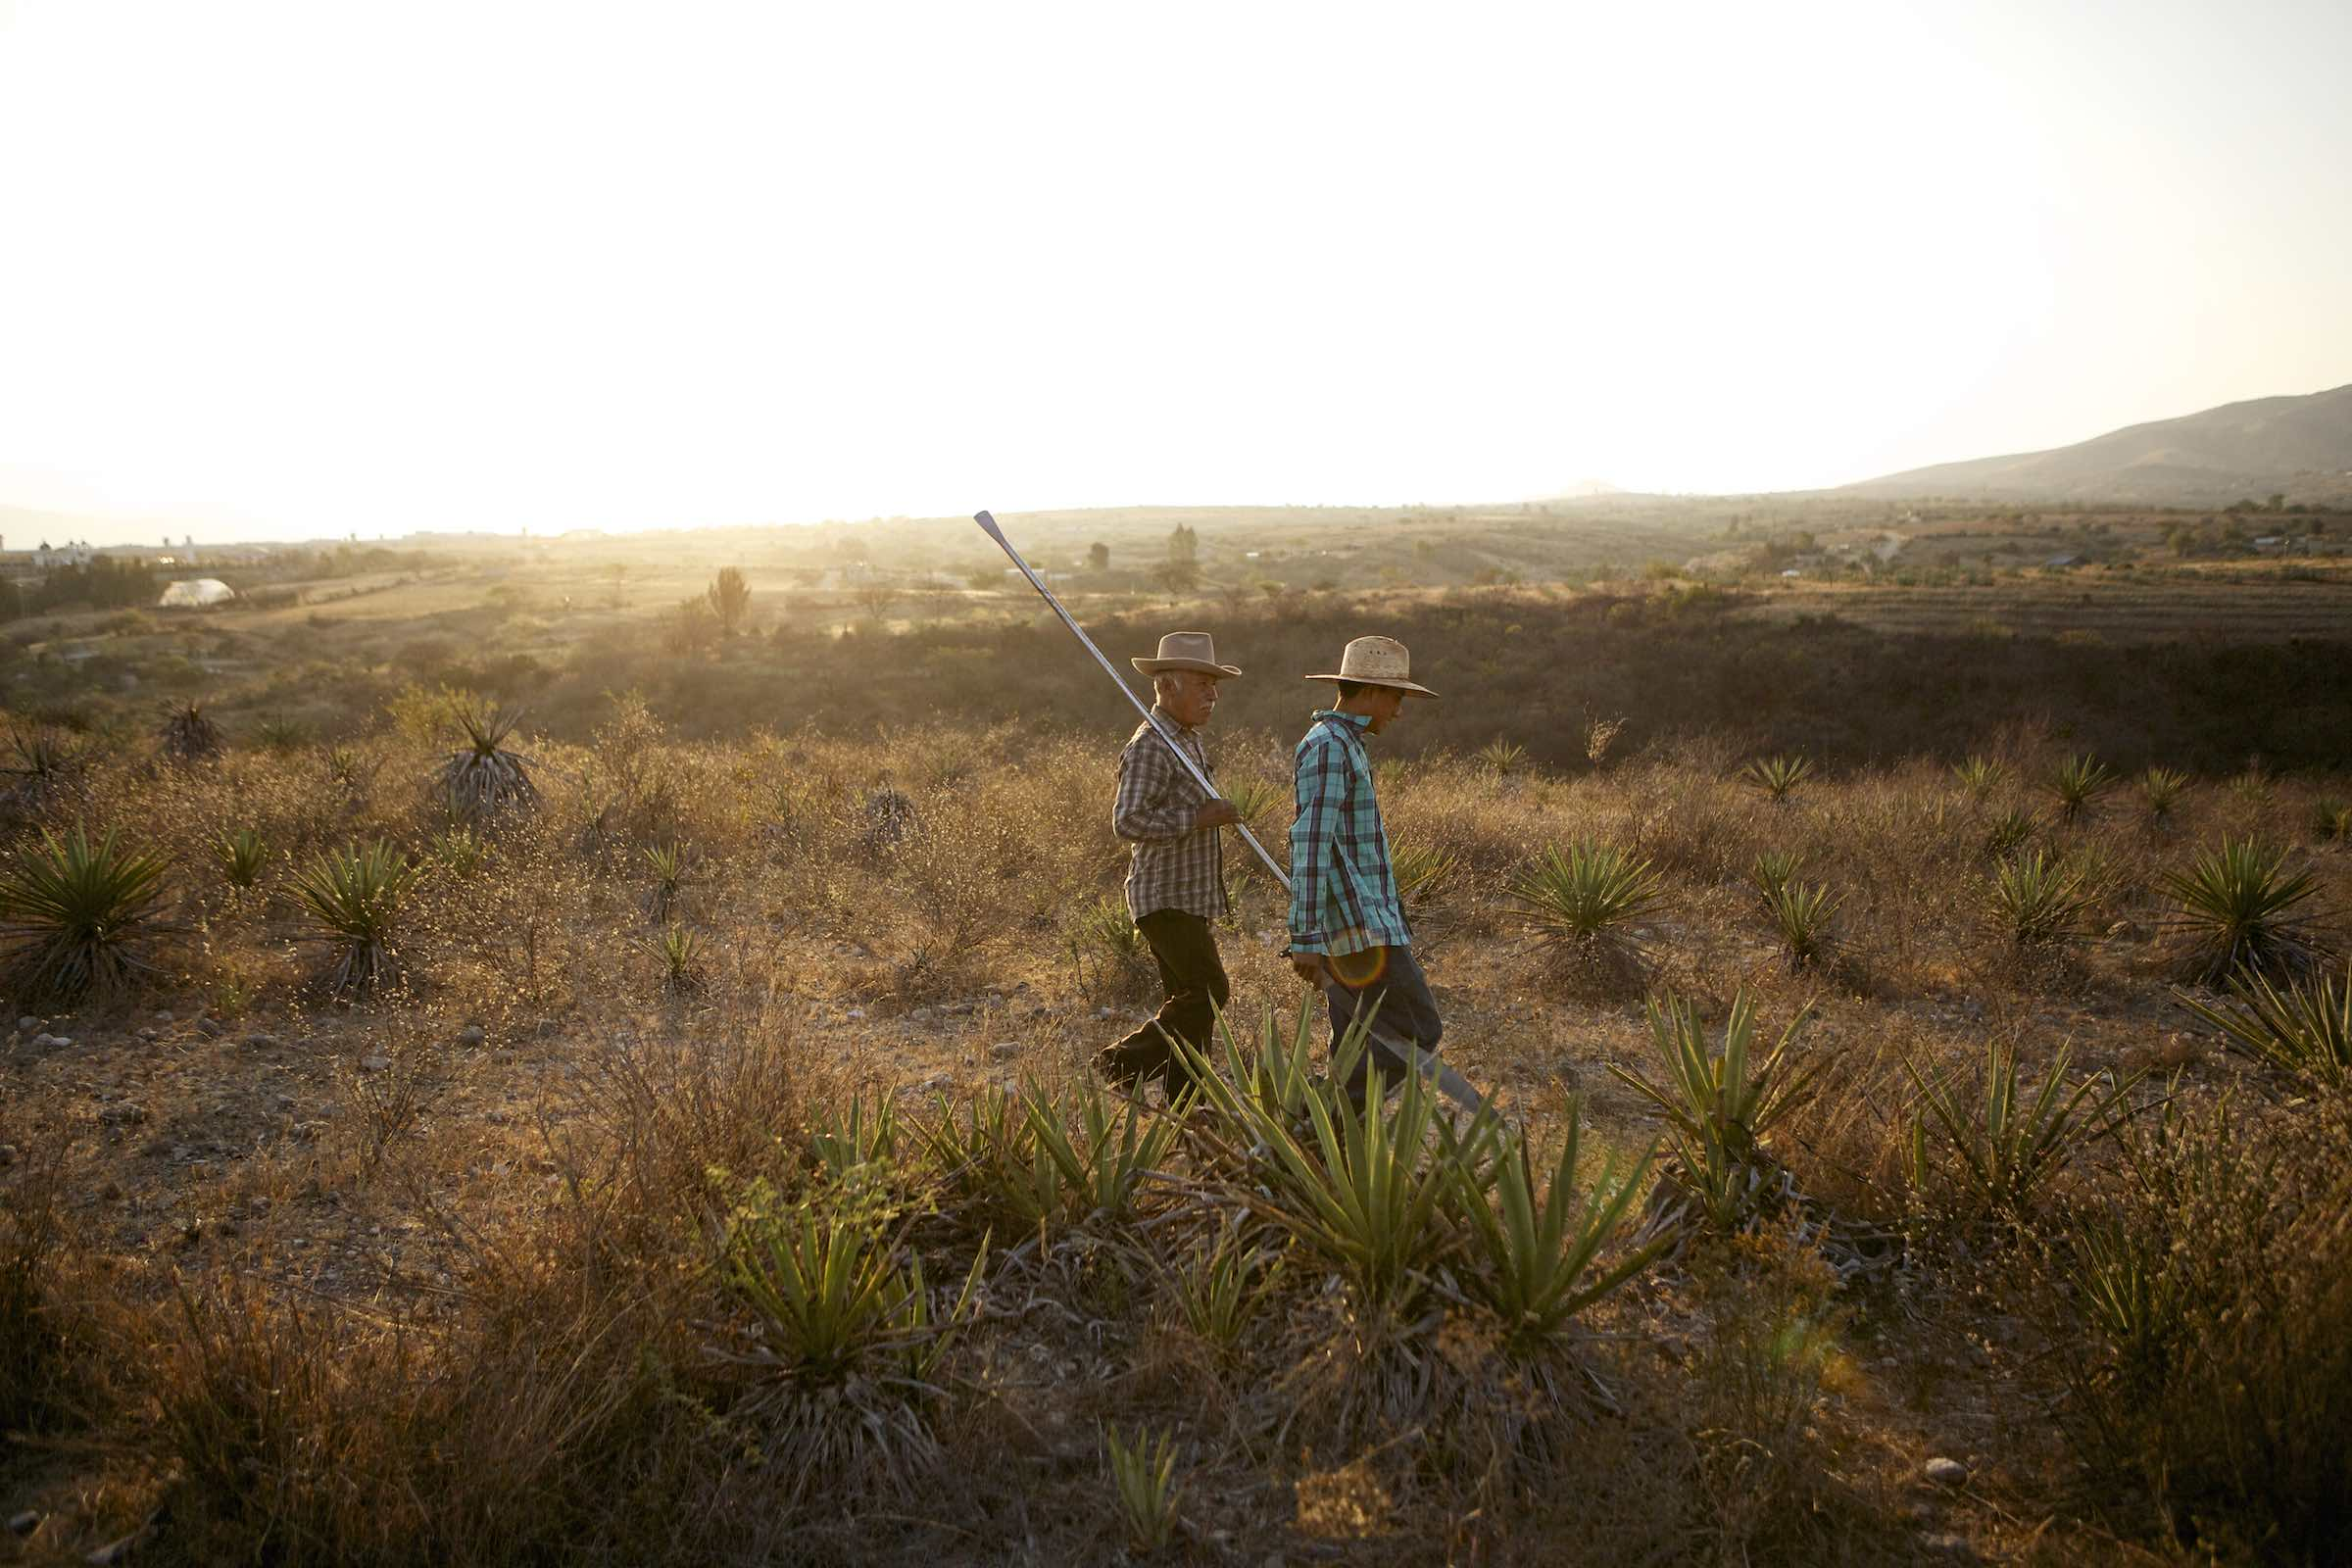 Farmers harvesting agaves.